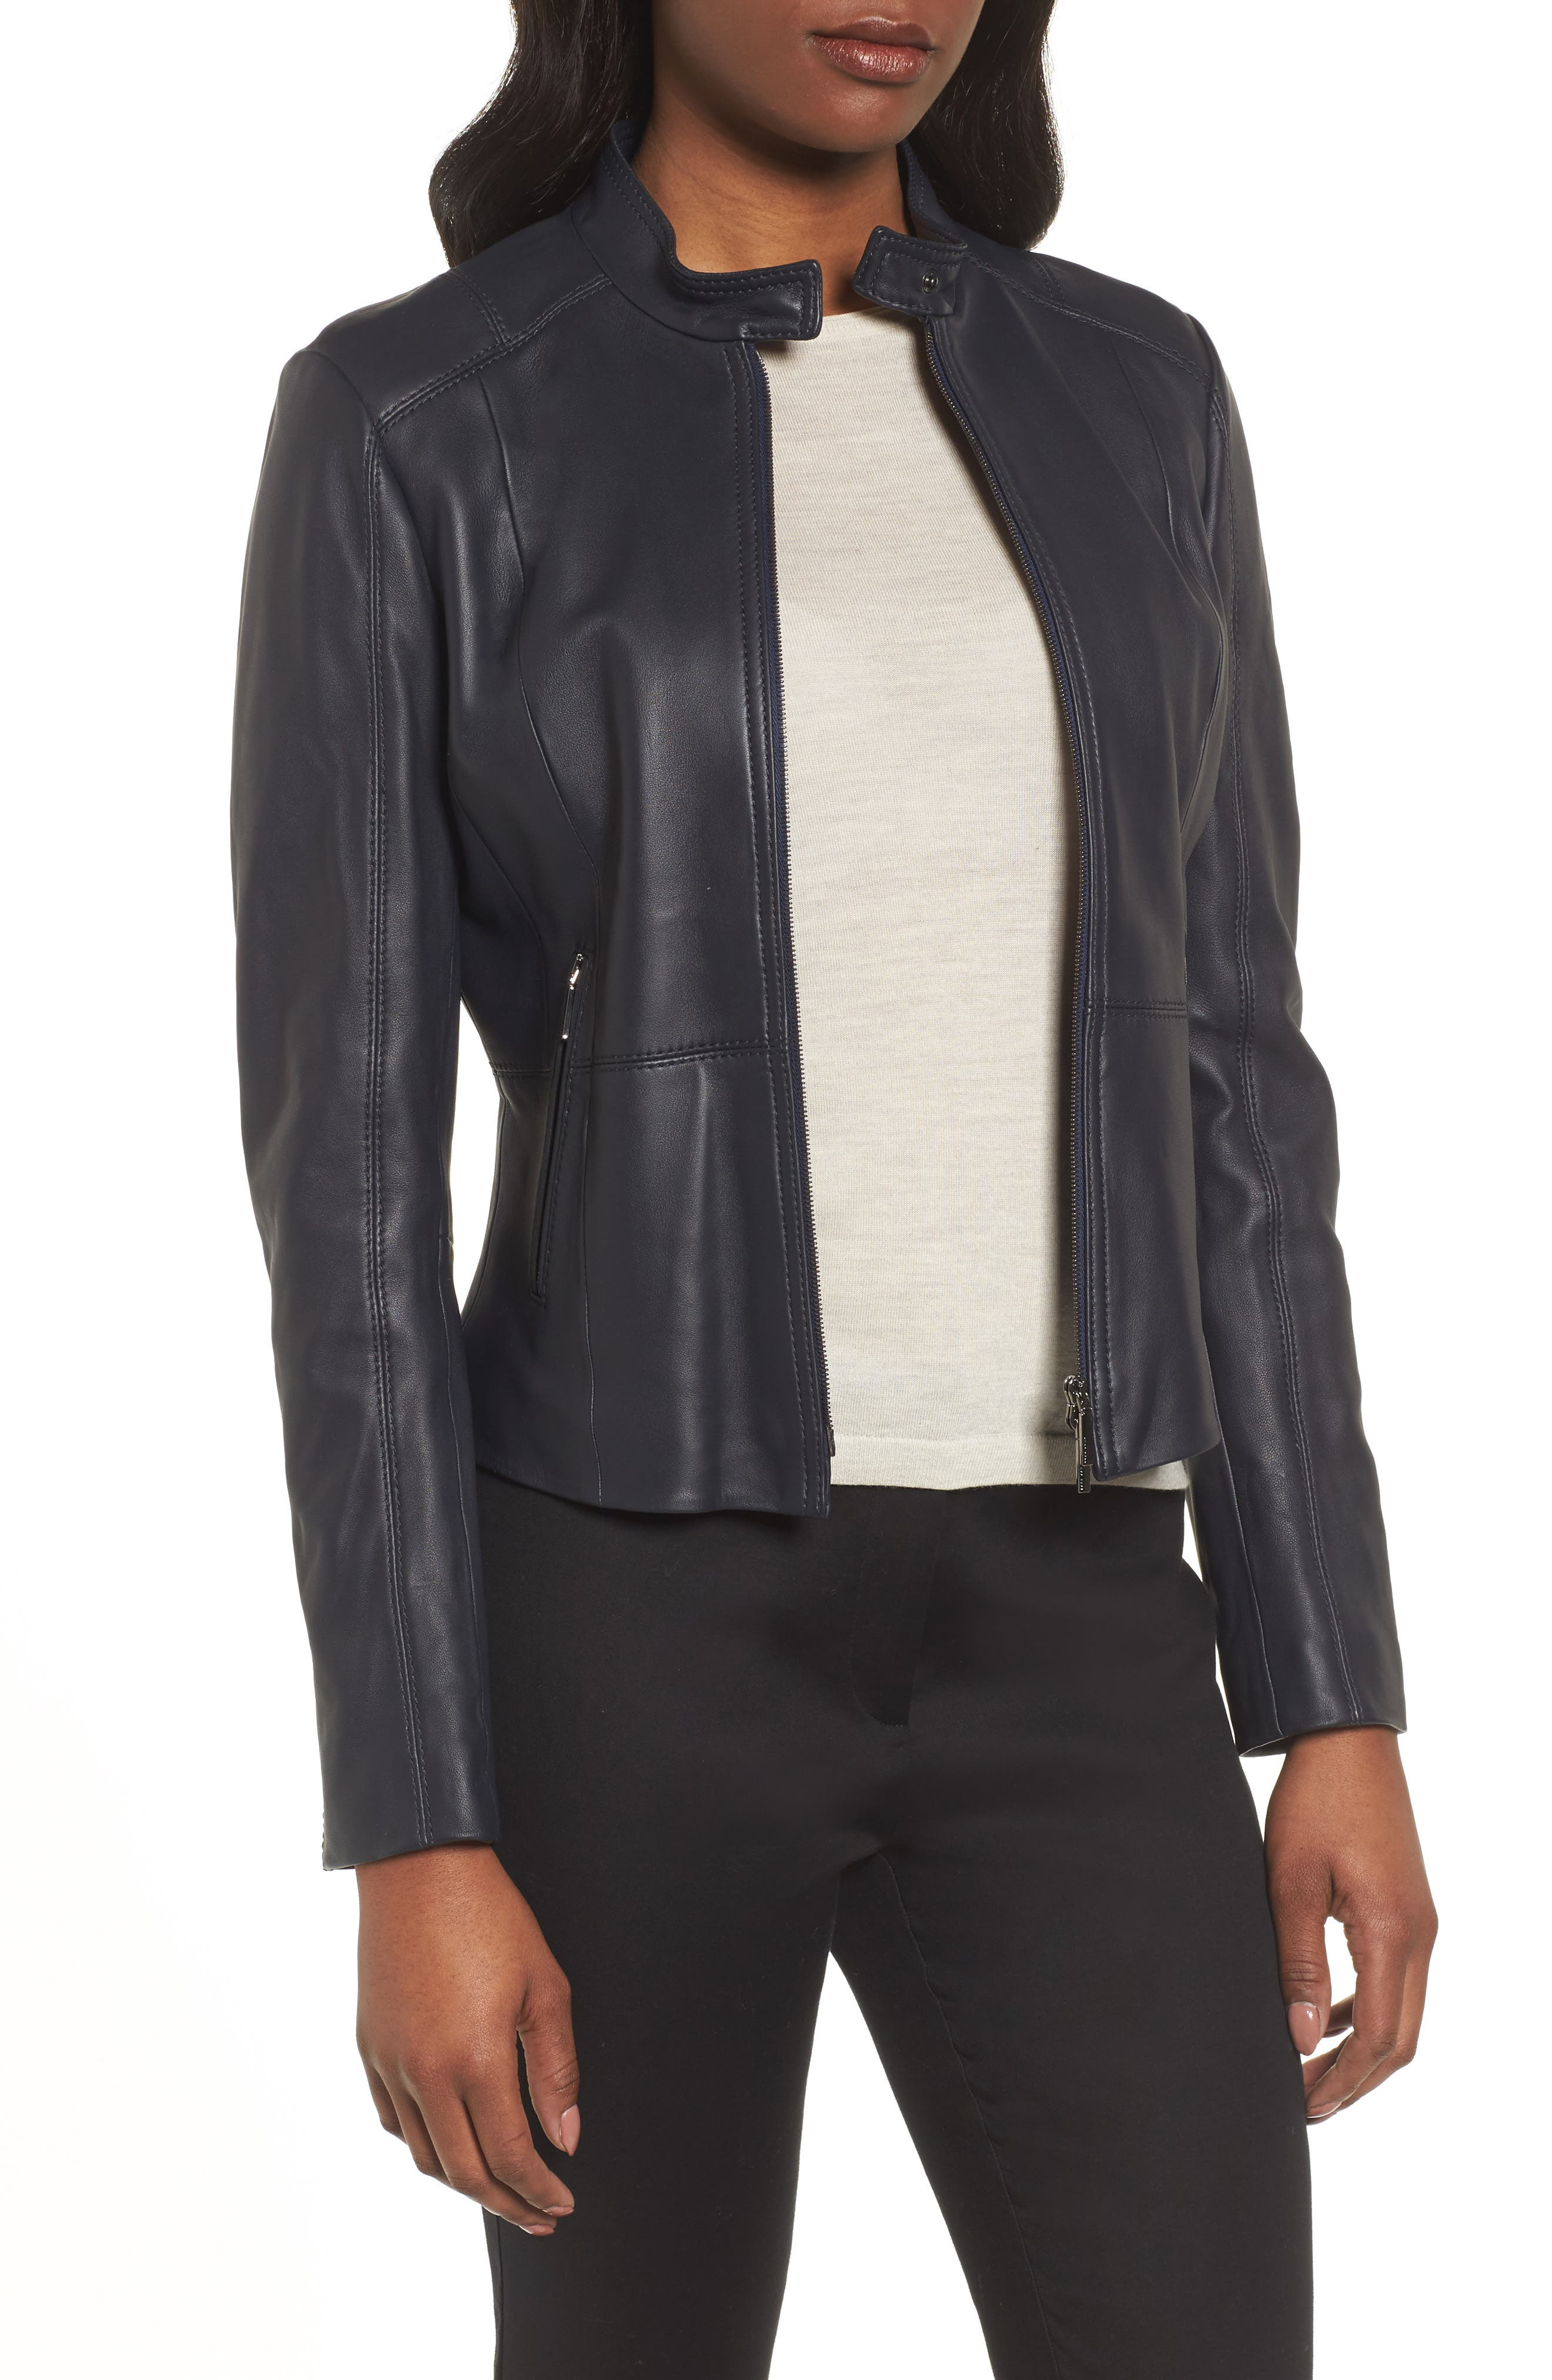 Sammonaie Leather Jacket,                             Main thumbnail 1, color,                             480